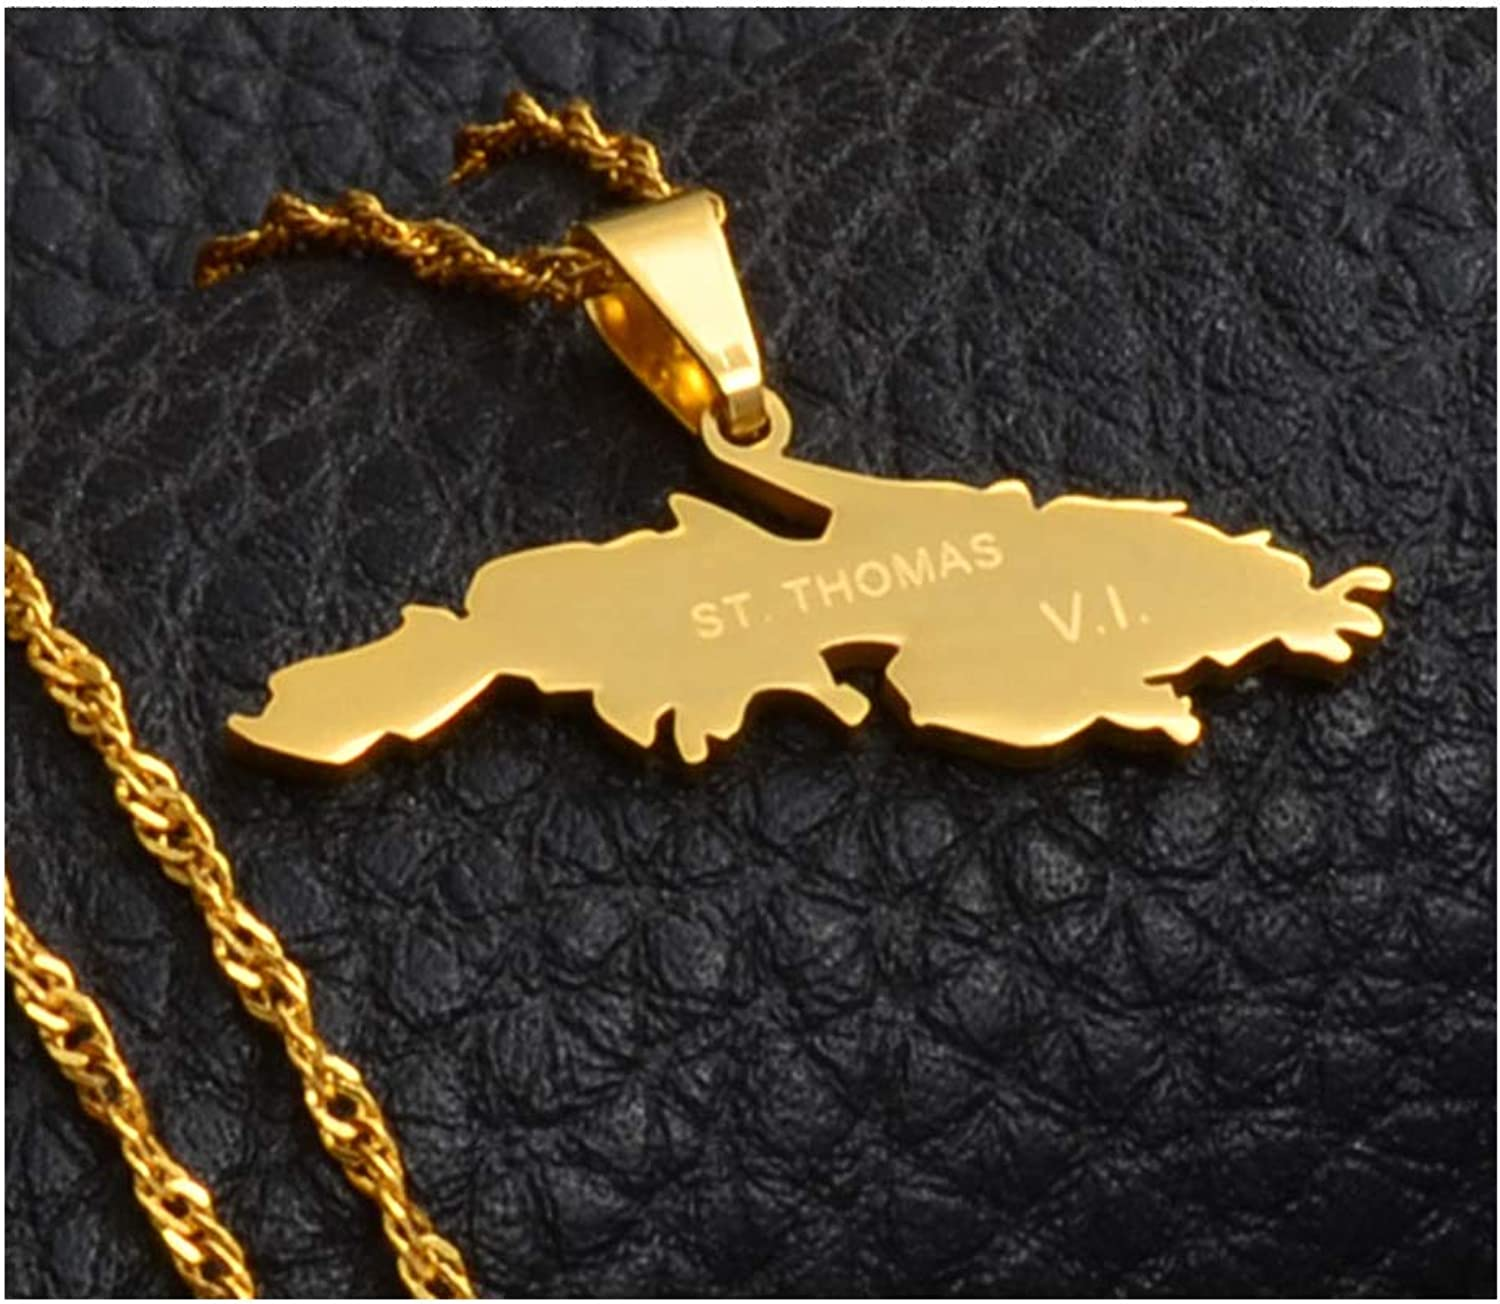 Thomas V.I Zoe-clothes-store Map Pendant Necklaces for Women Men St Charm Pendant Necklaces Gold Color Saint Thomas Island Map Jewelry Gifts